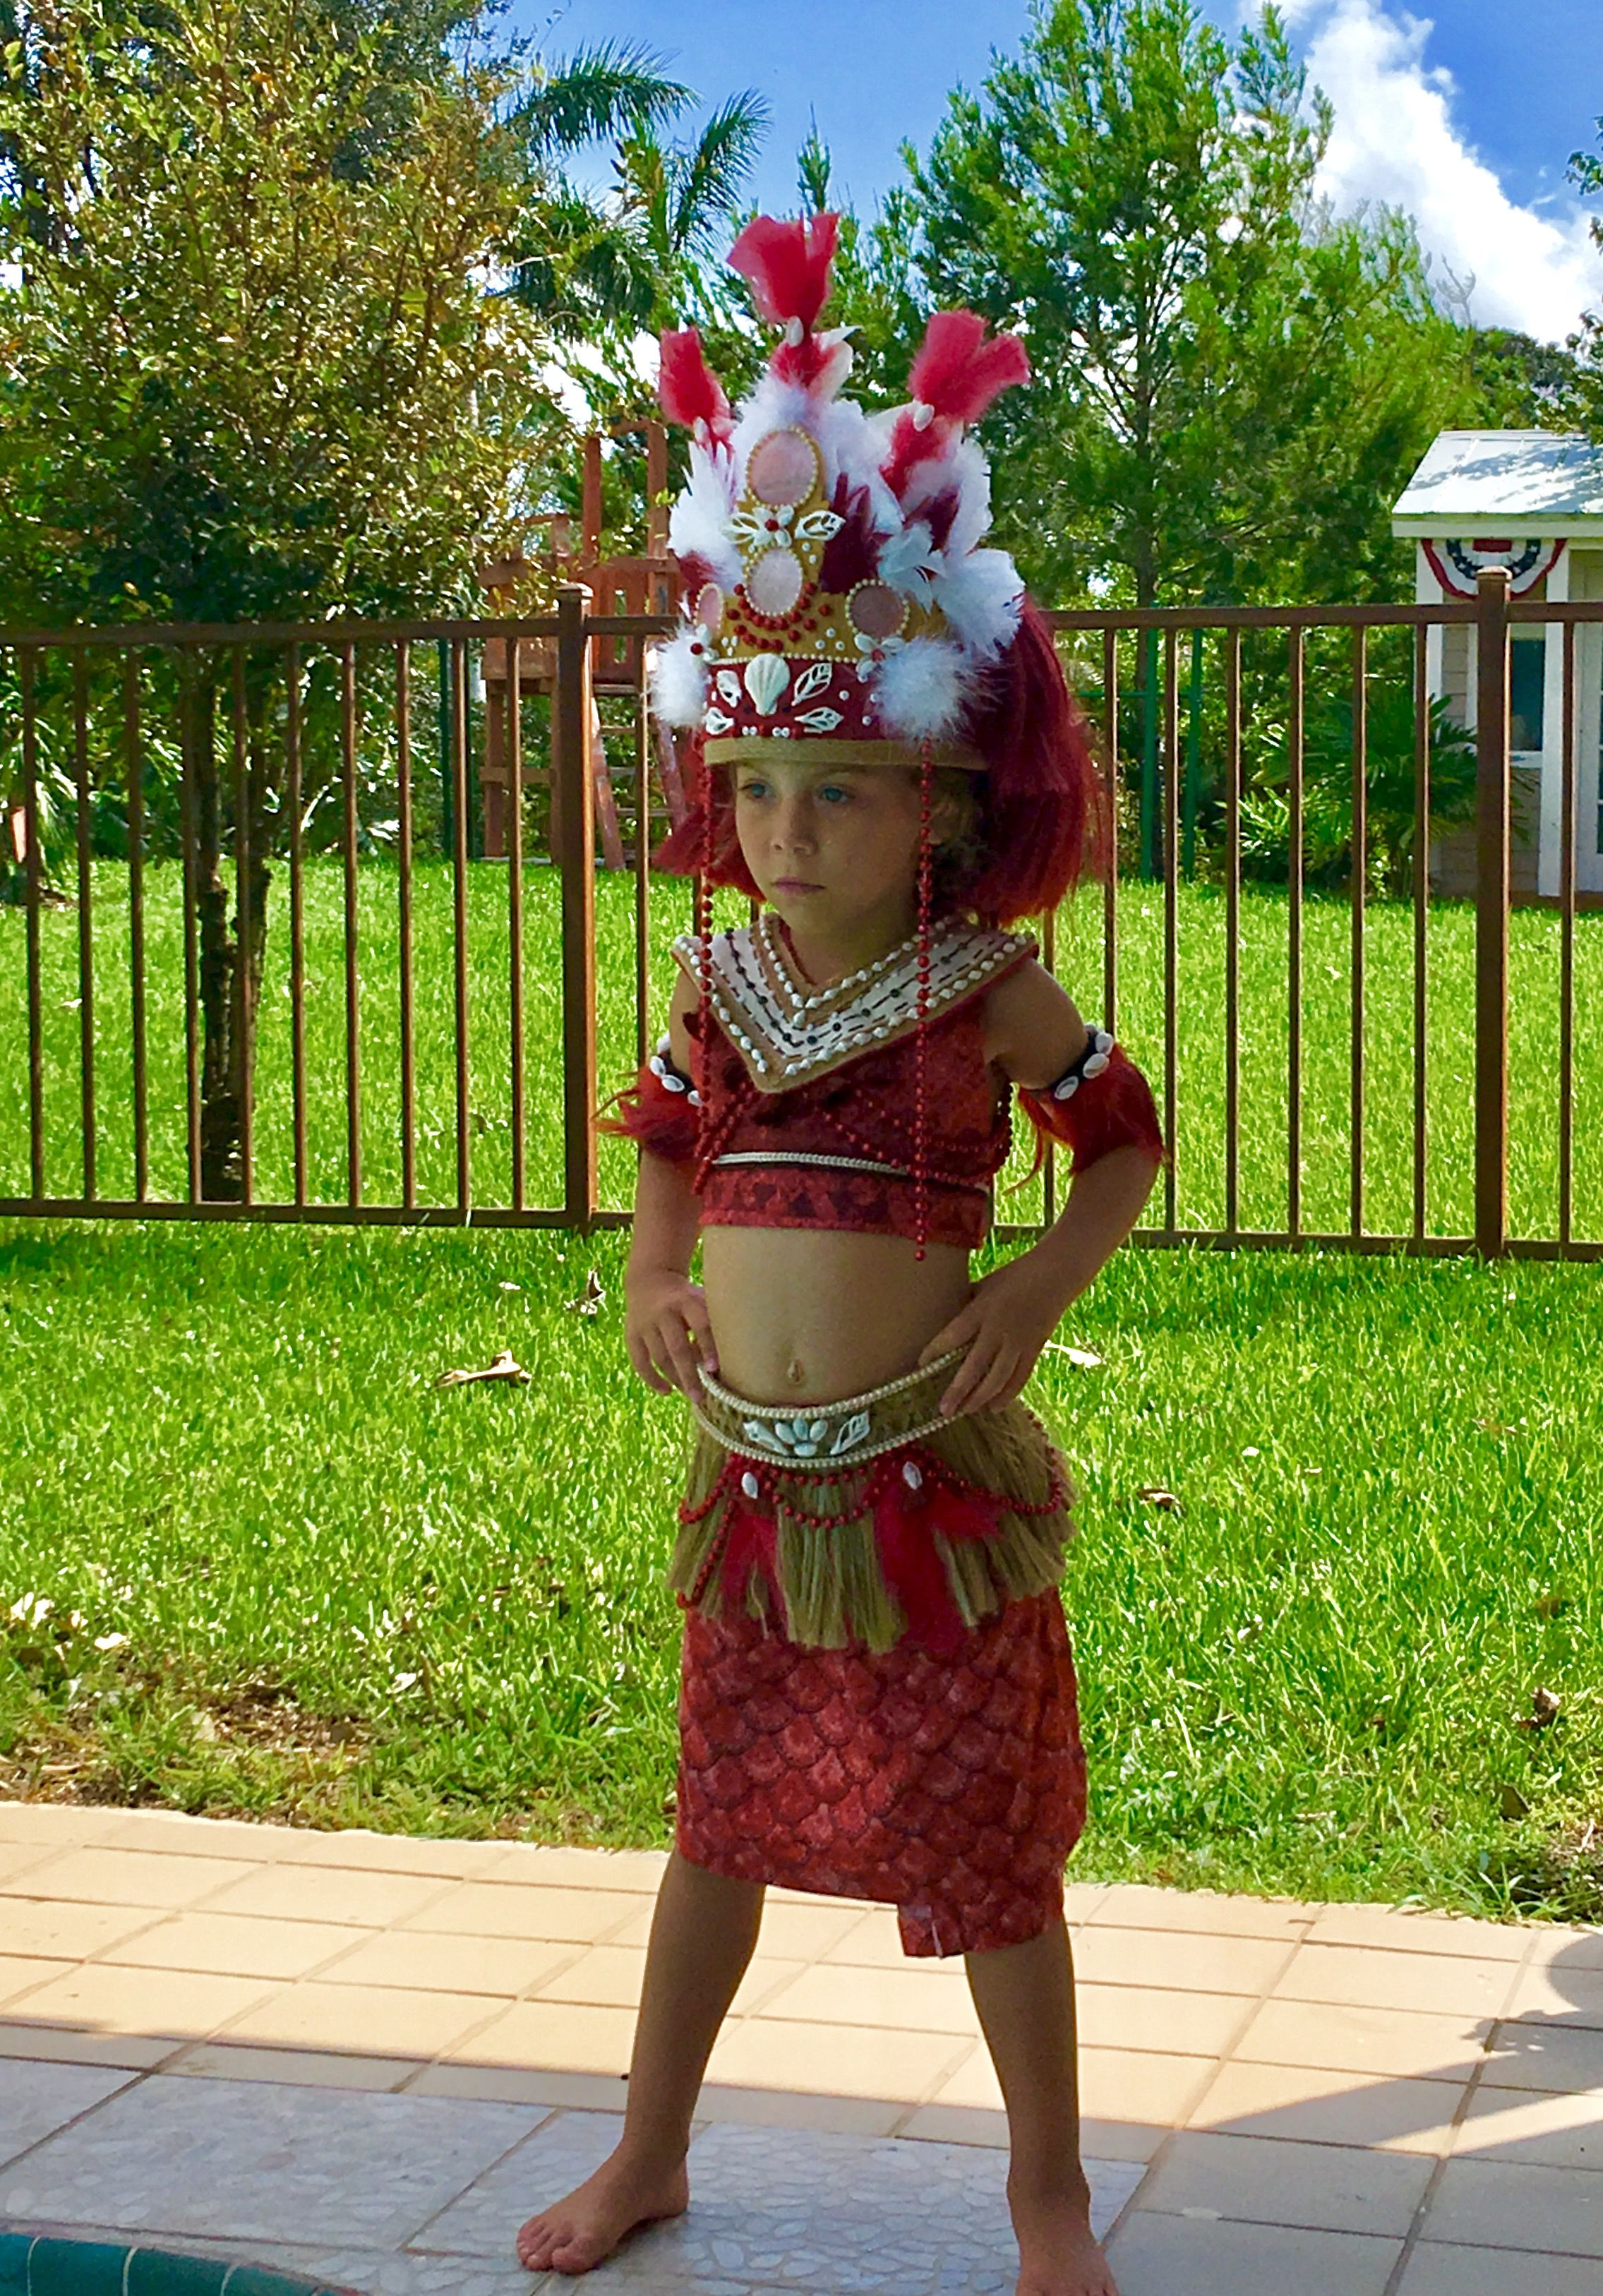 Moana ,Ceremony, Costume,Halloween, Handmade, Award Winning, Diy, Costume